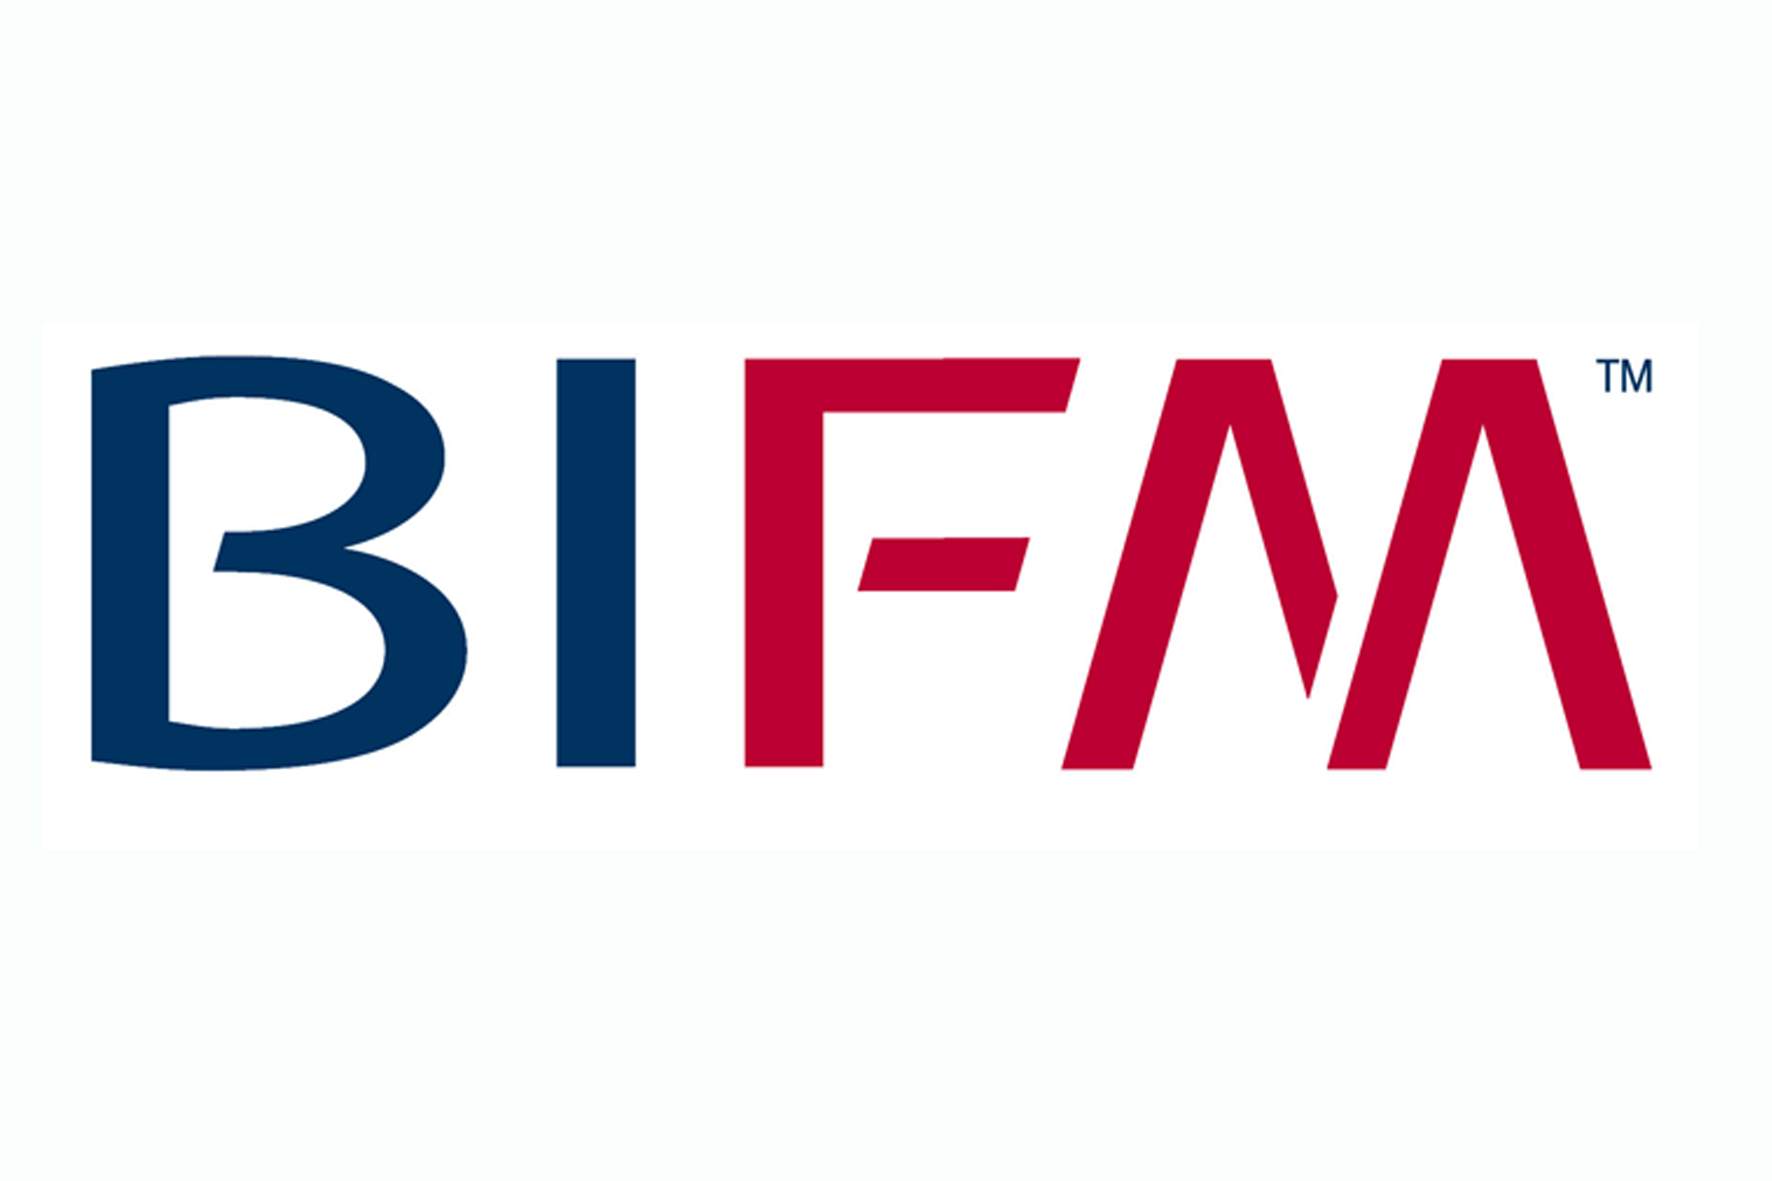 BIFM members have voted in favour of the 'workplace' name change and Martin Read explains what this means for FM.